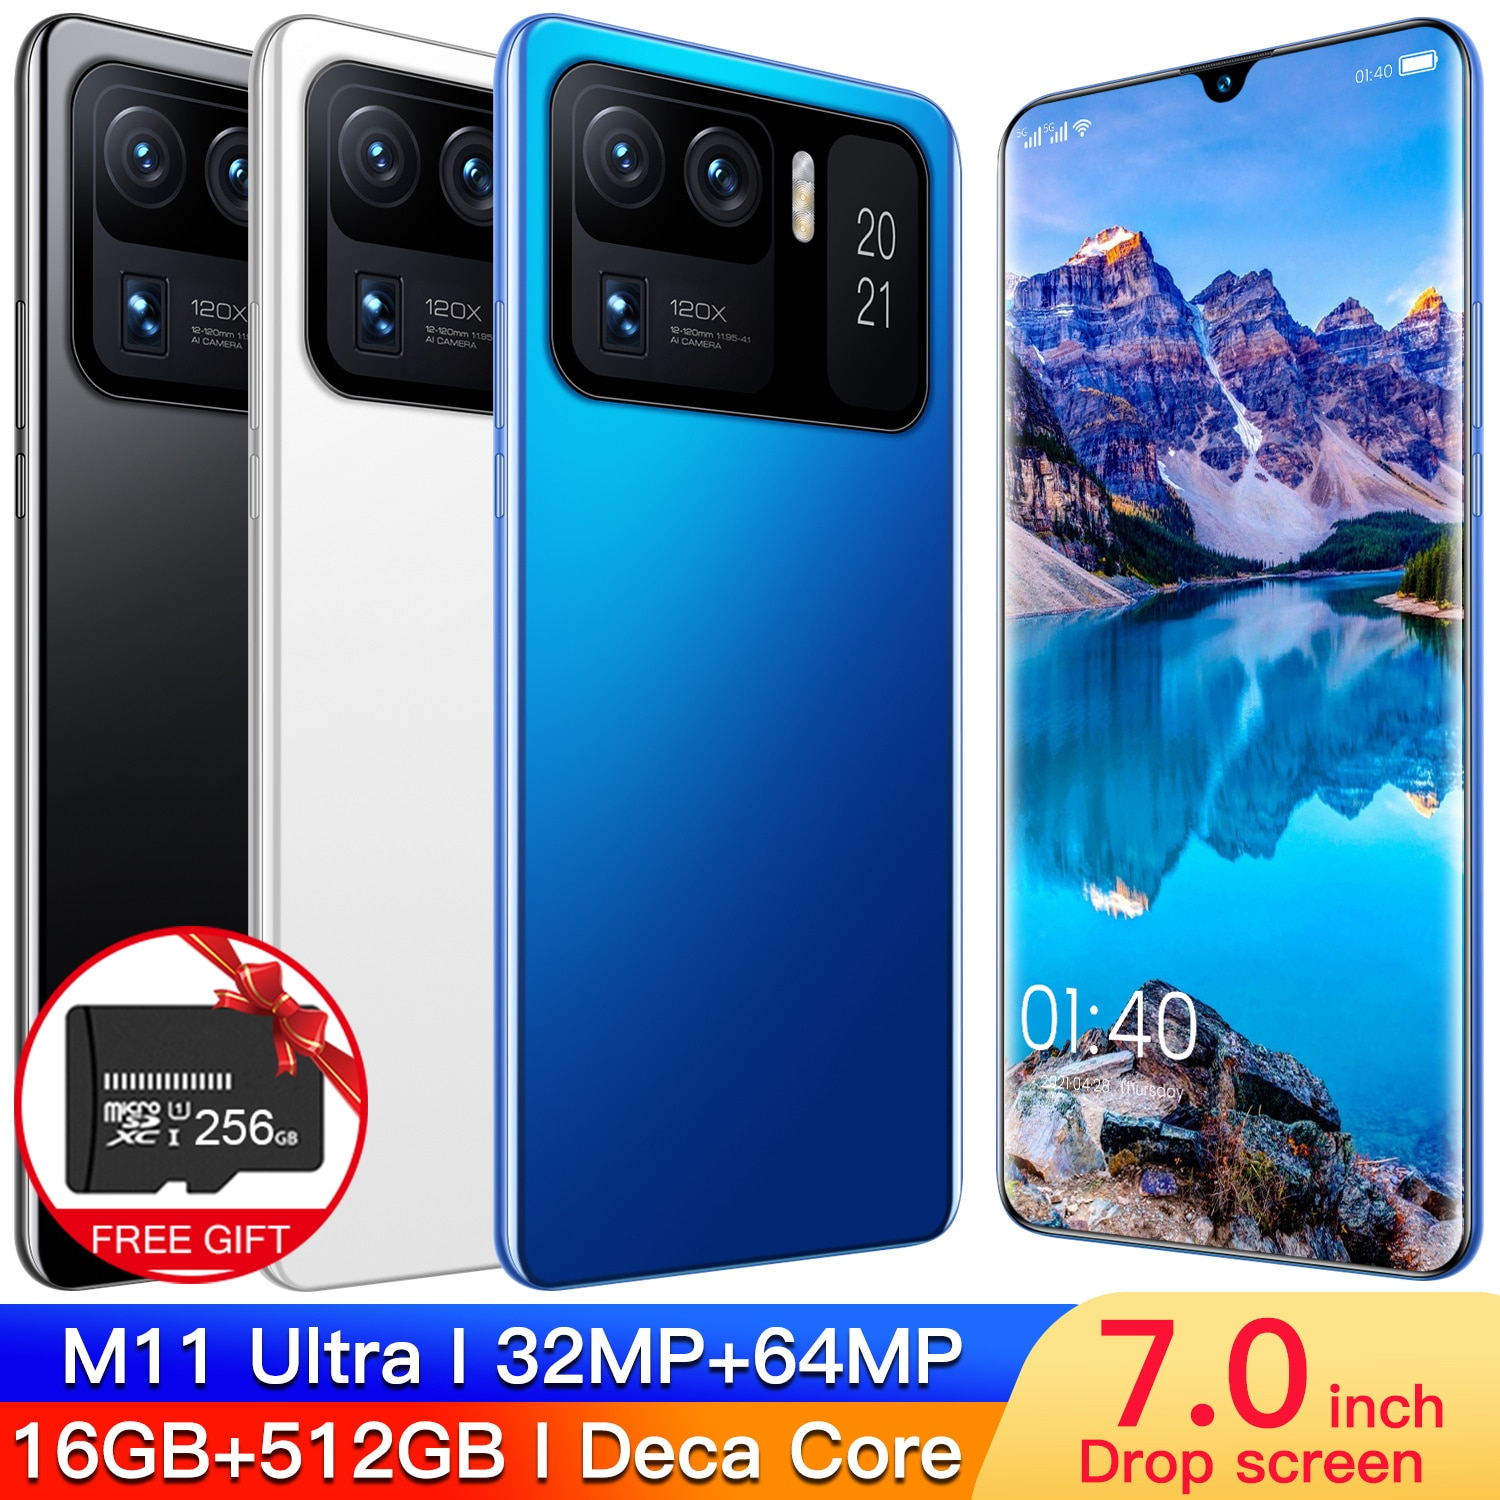 2021 Latest M11 Ultra 7.0 Inch 16+512GBSmartphone Face RecognitionPhone-Dual SIM Support T cards with 7200 mAh Bettery 32MP+64MP